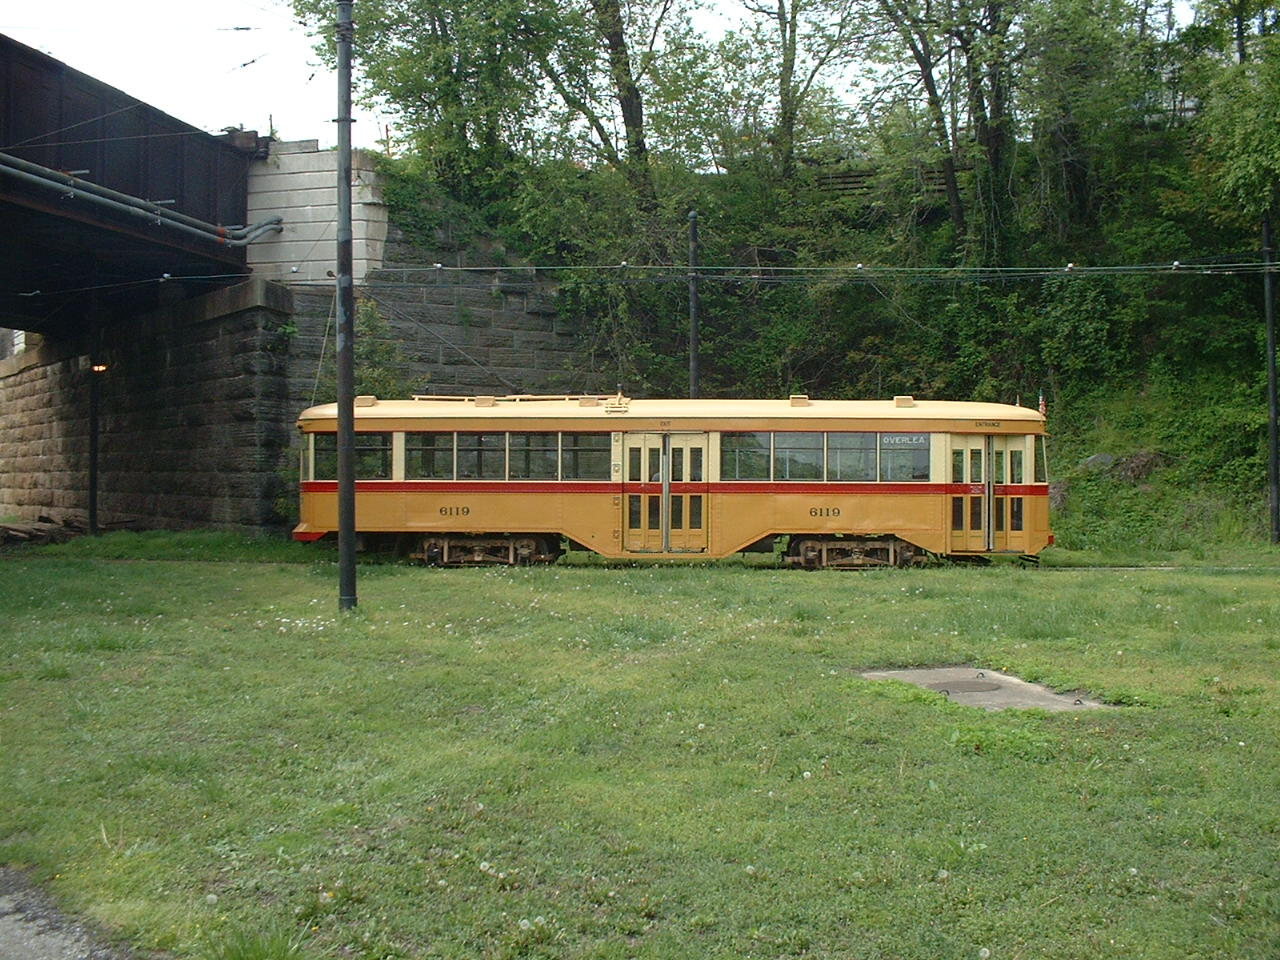 (300k, 1280x960)<br><b>Country:</b> United States<br><b>City:</b> Baltimore, MD<br><b>System:</b> Baltimore Streetcar Museum <br><b>Car:</b>  6119 <br><b>Photo by:</b> Dan Lawrence<br><b>Date:</b> 4/27/2002<br><b>Notes:</b> BSM 6119 at North Avenue Loop<br><b>Viewed (this week/total):</b> 3 / 3354